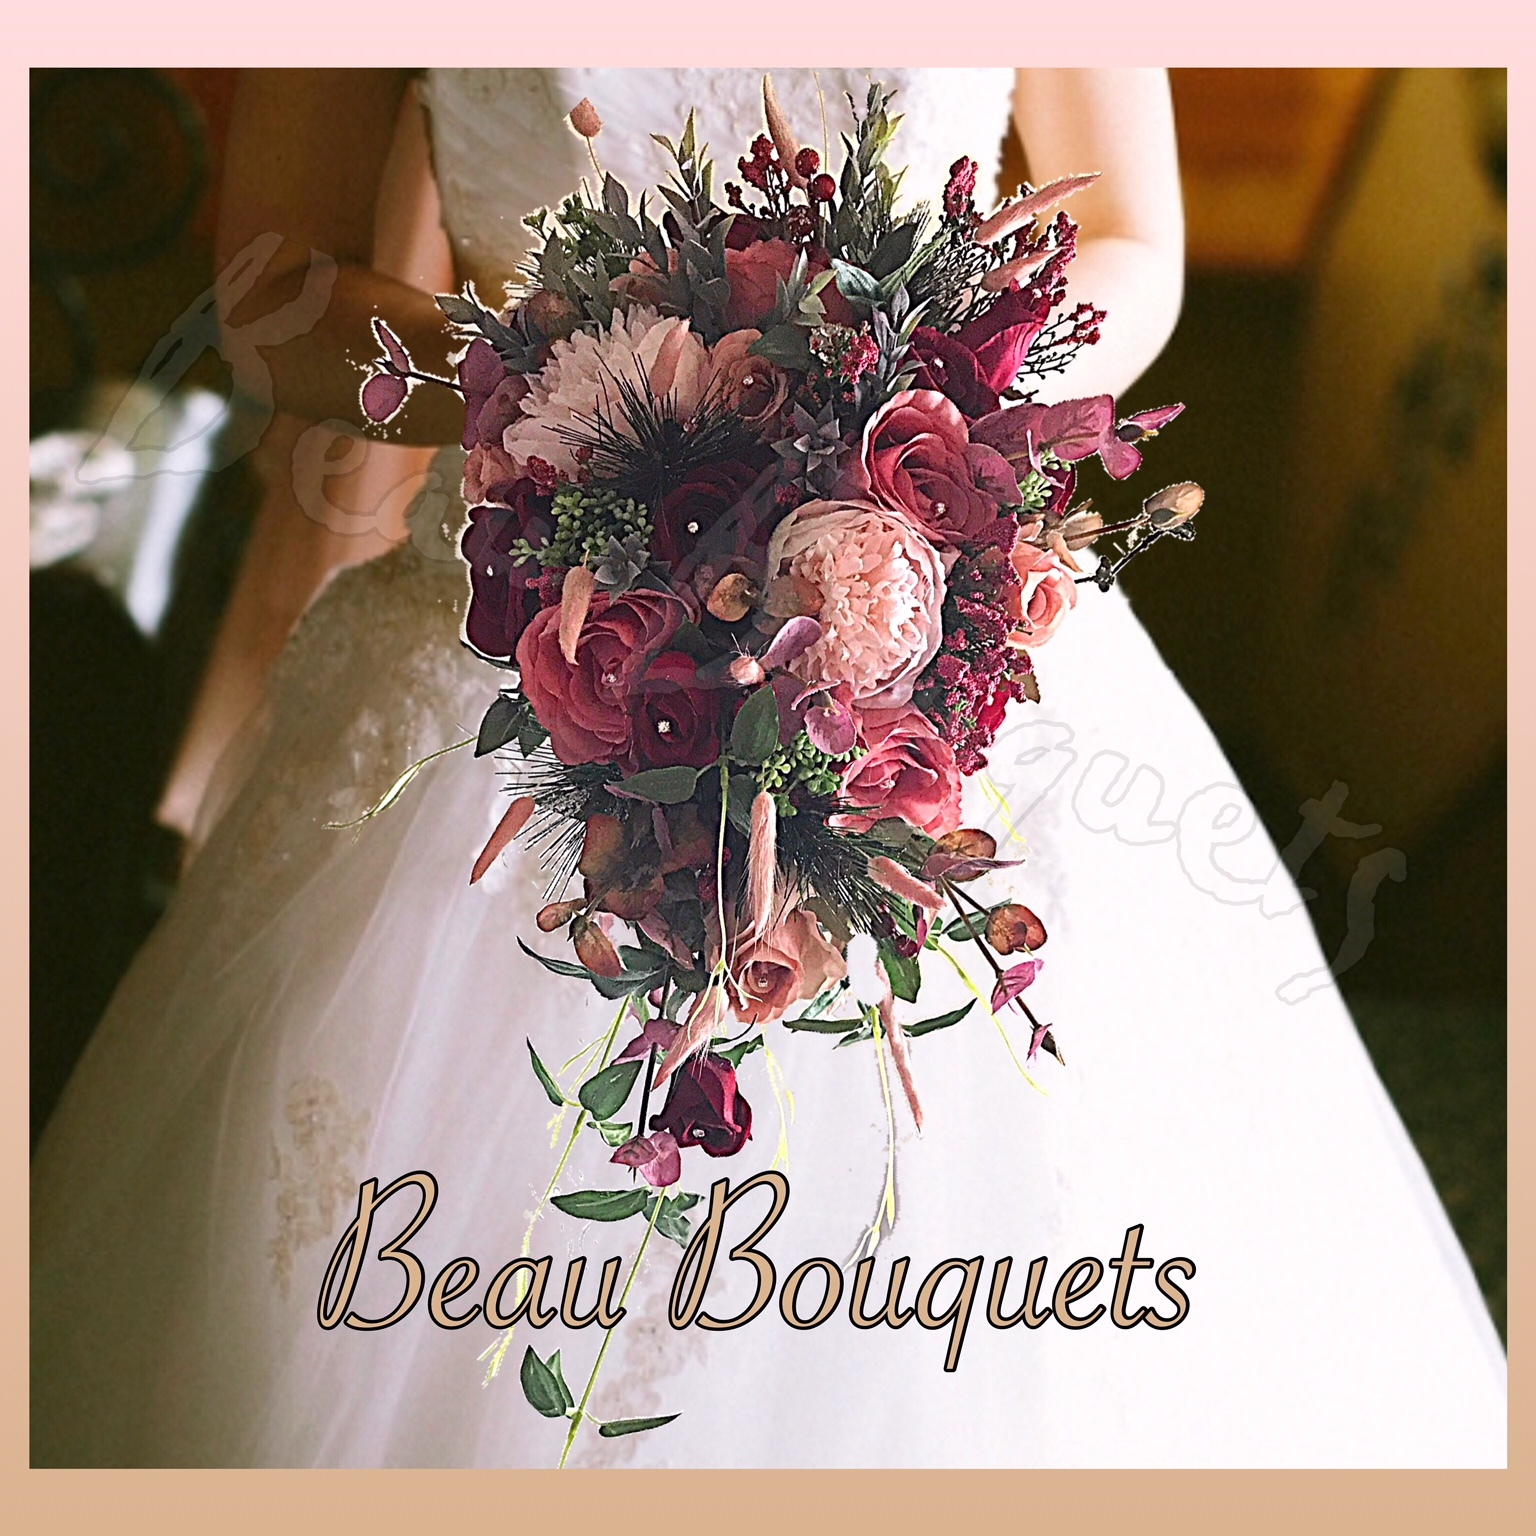 TRUE LOVE - CASCADE BRIDE BOUQUET Wintry burgundy & dusky pink roses, spruce, fir cones, berries adn dusky green foliage